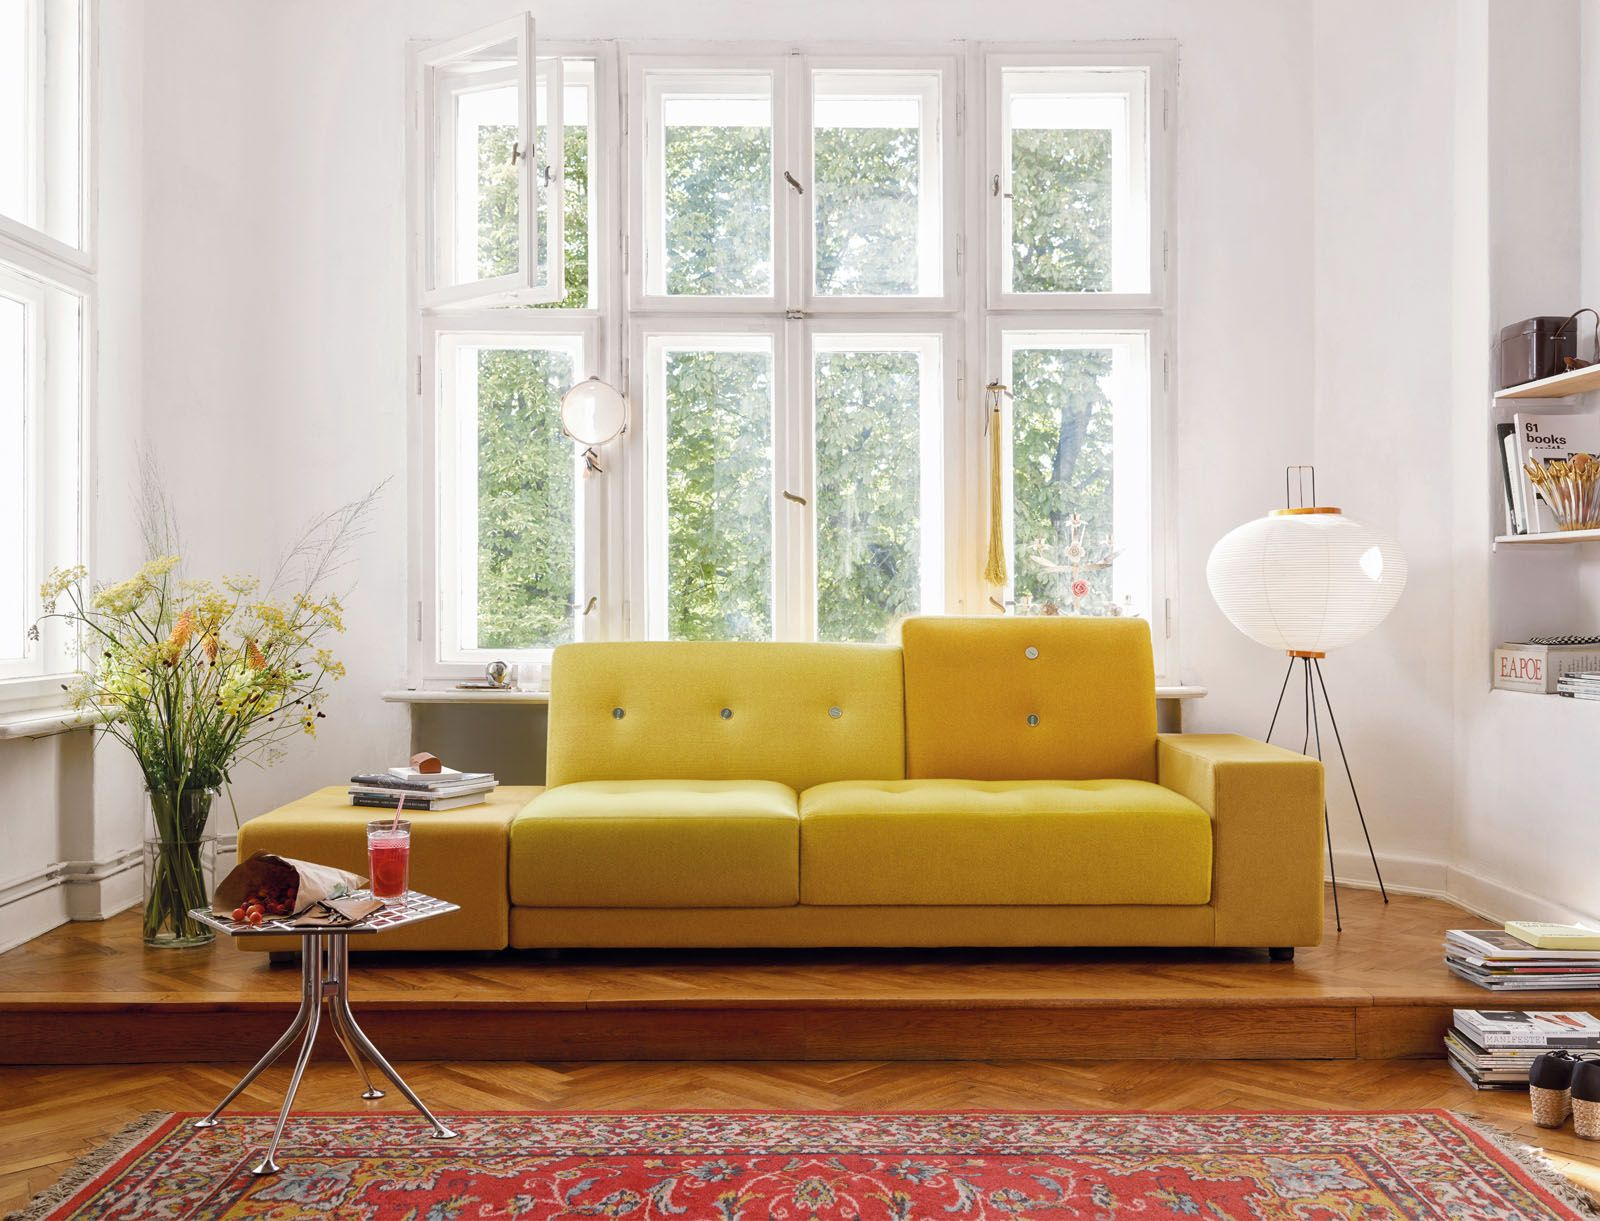 The Vitra Polder sofa features an asymmetrical form and varied colour combinations in shades of red, green, yellow and blue